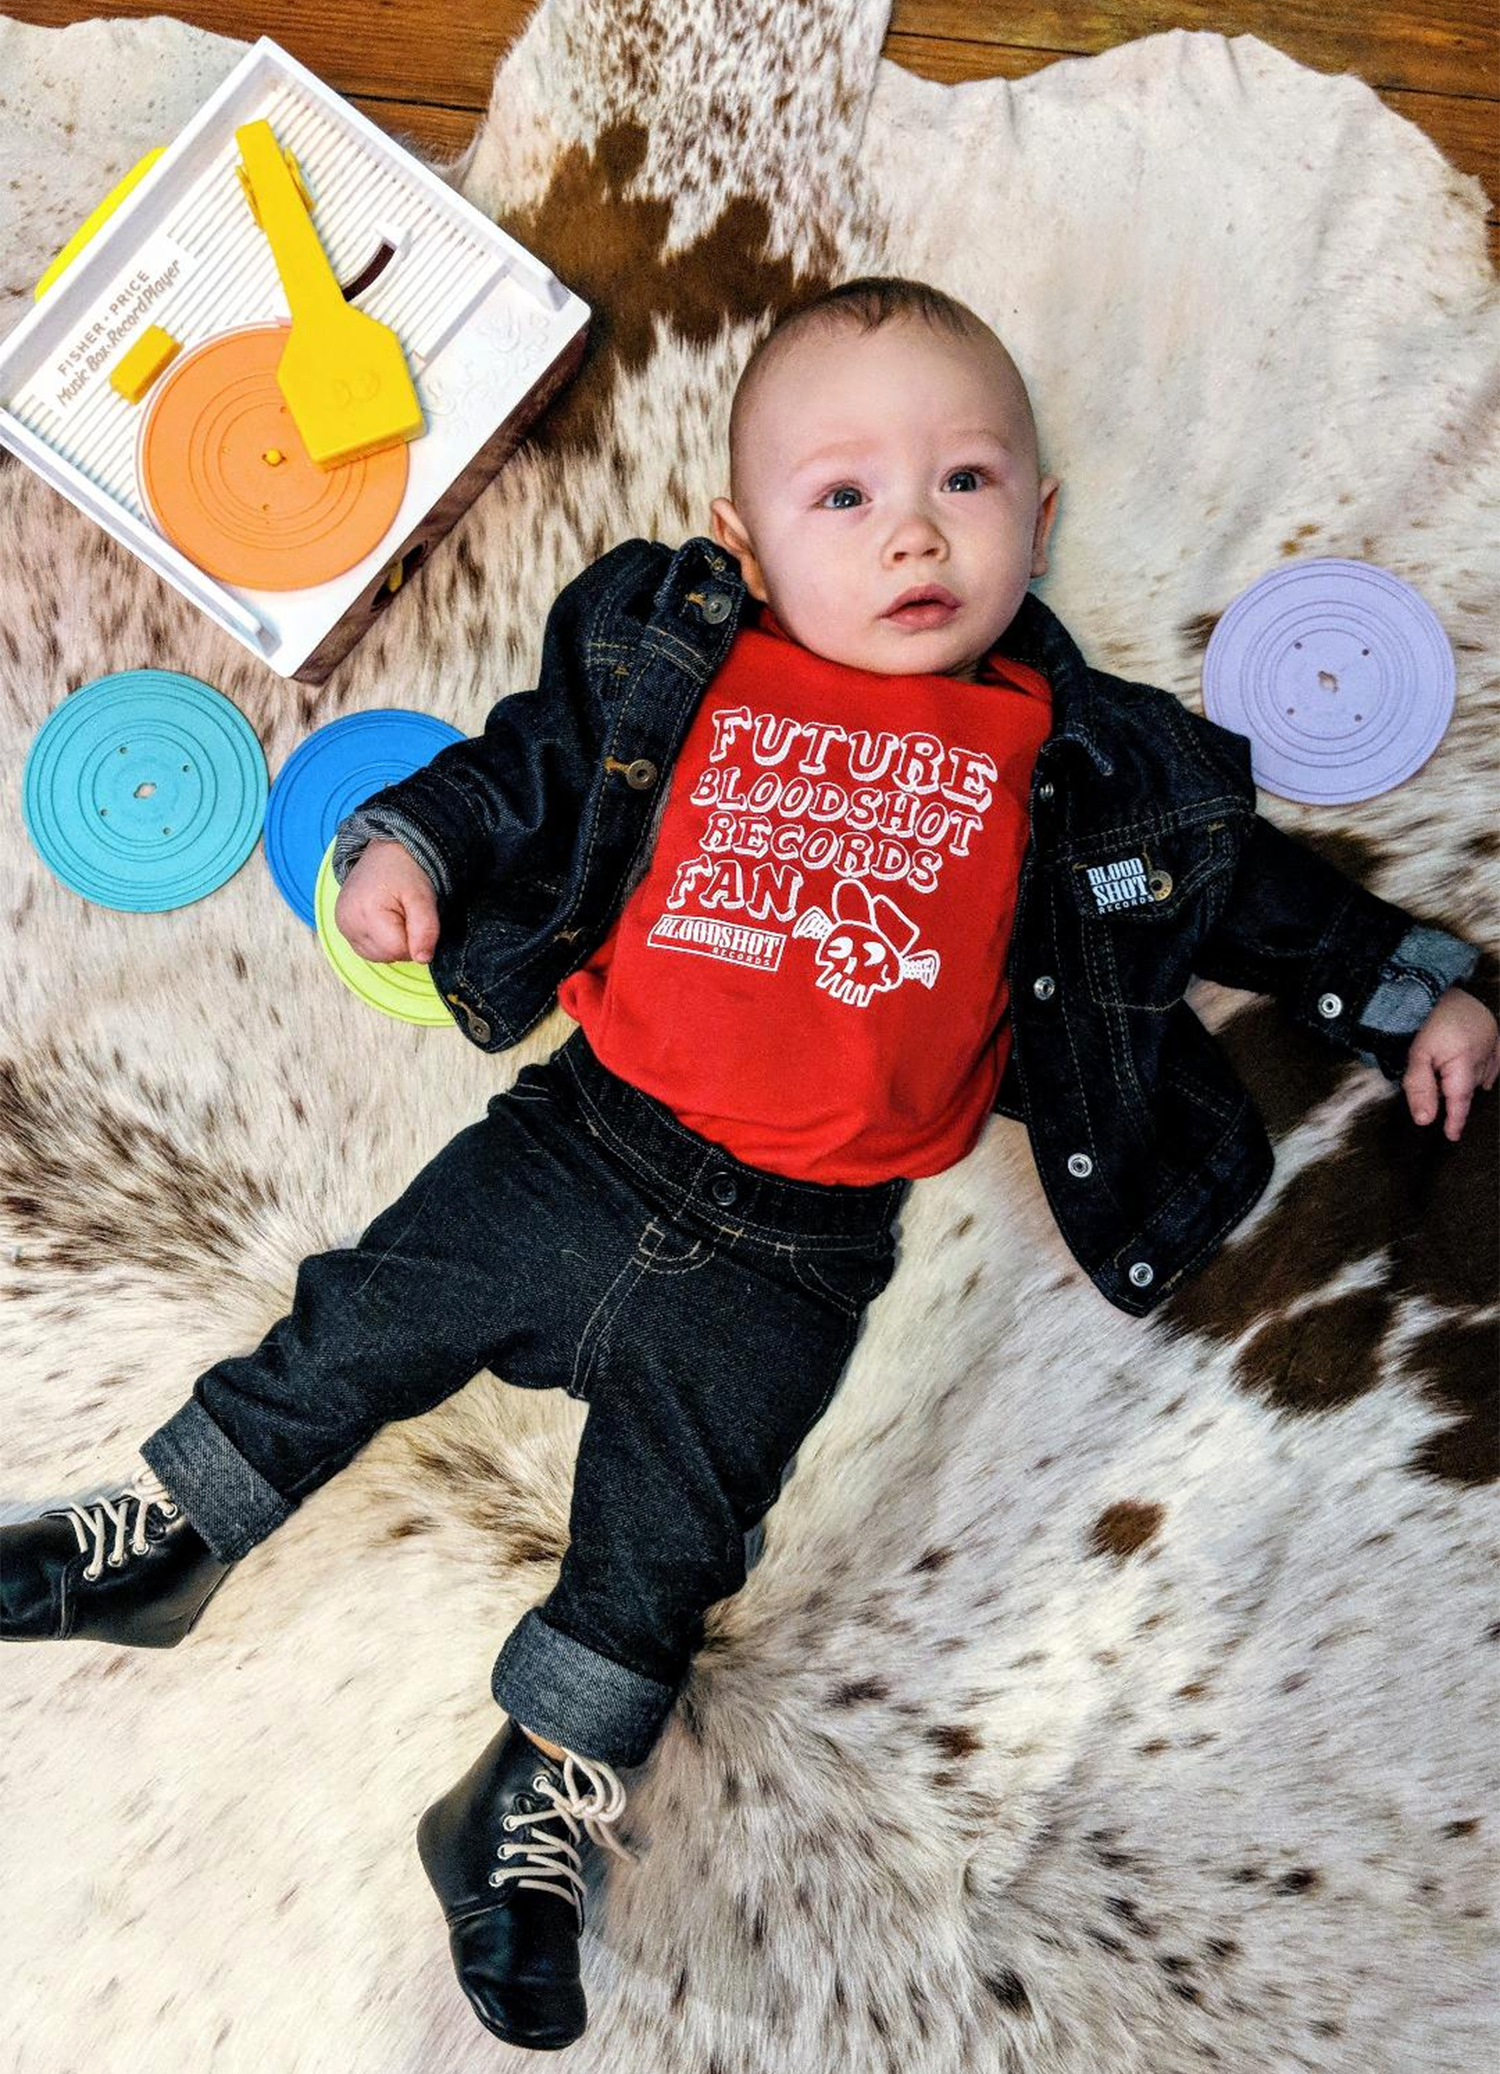 Bloodshot Records Baby Onesie